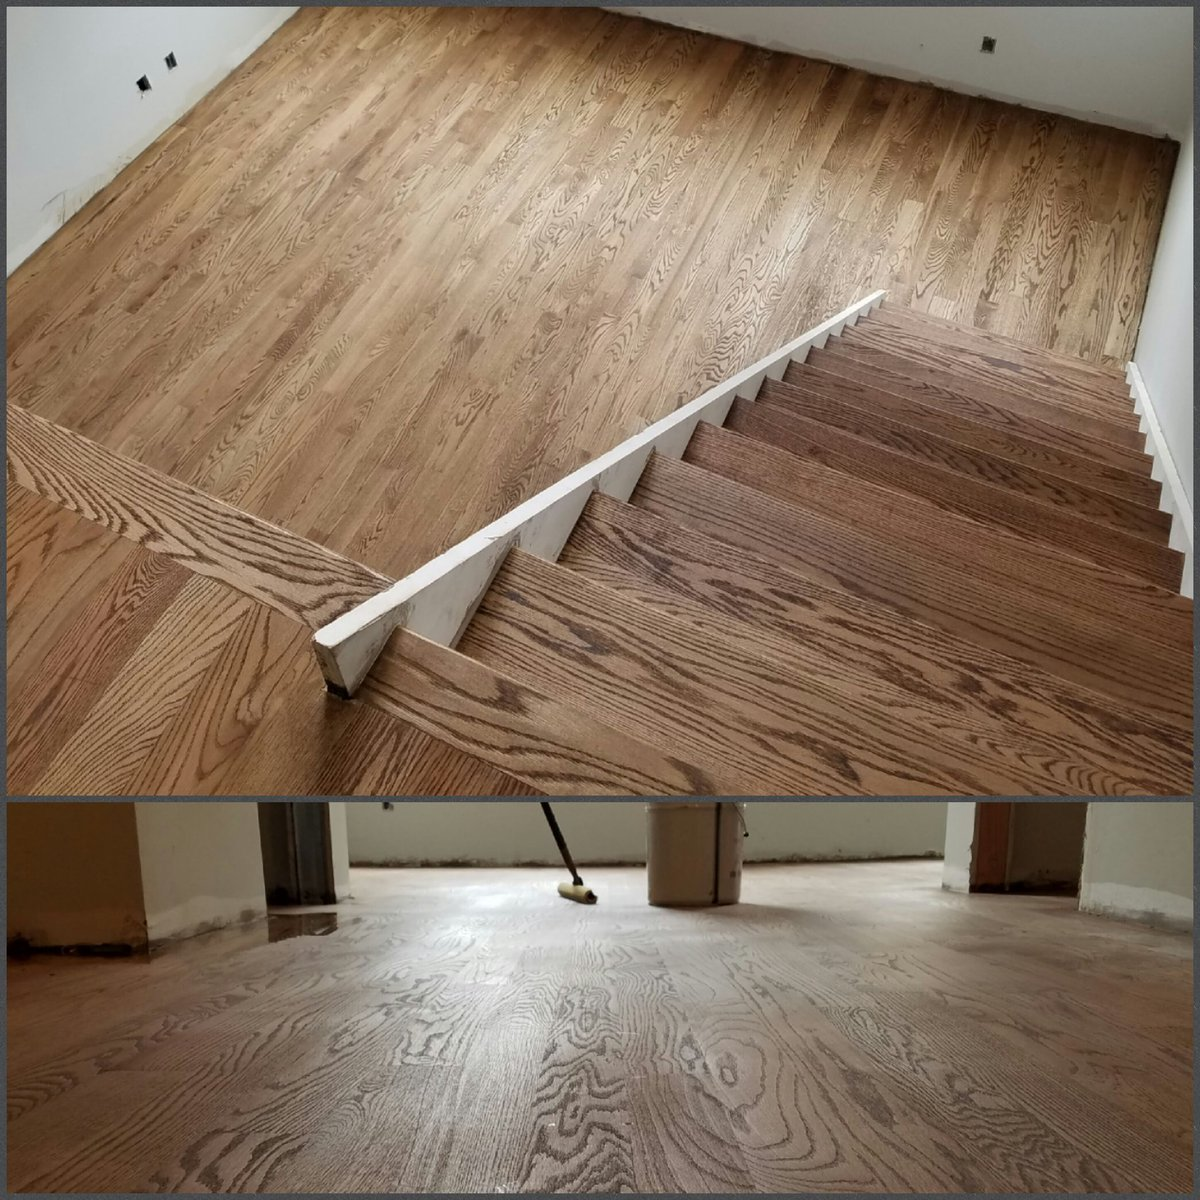 Ssj Flooring On Twitter Special Walnut Stain Red Oak Wood Great Job By Our Team Duraseal Thursdaythoughts Deadlineday